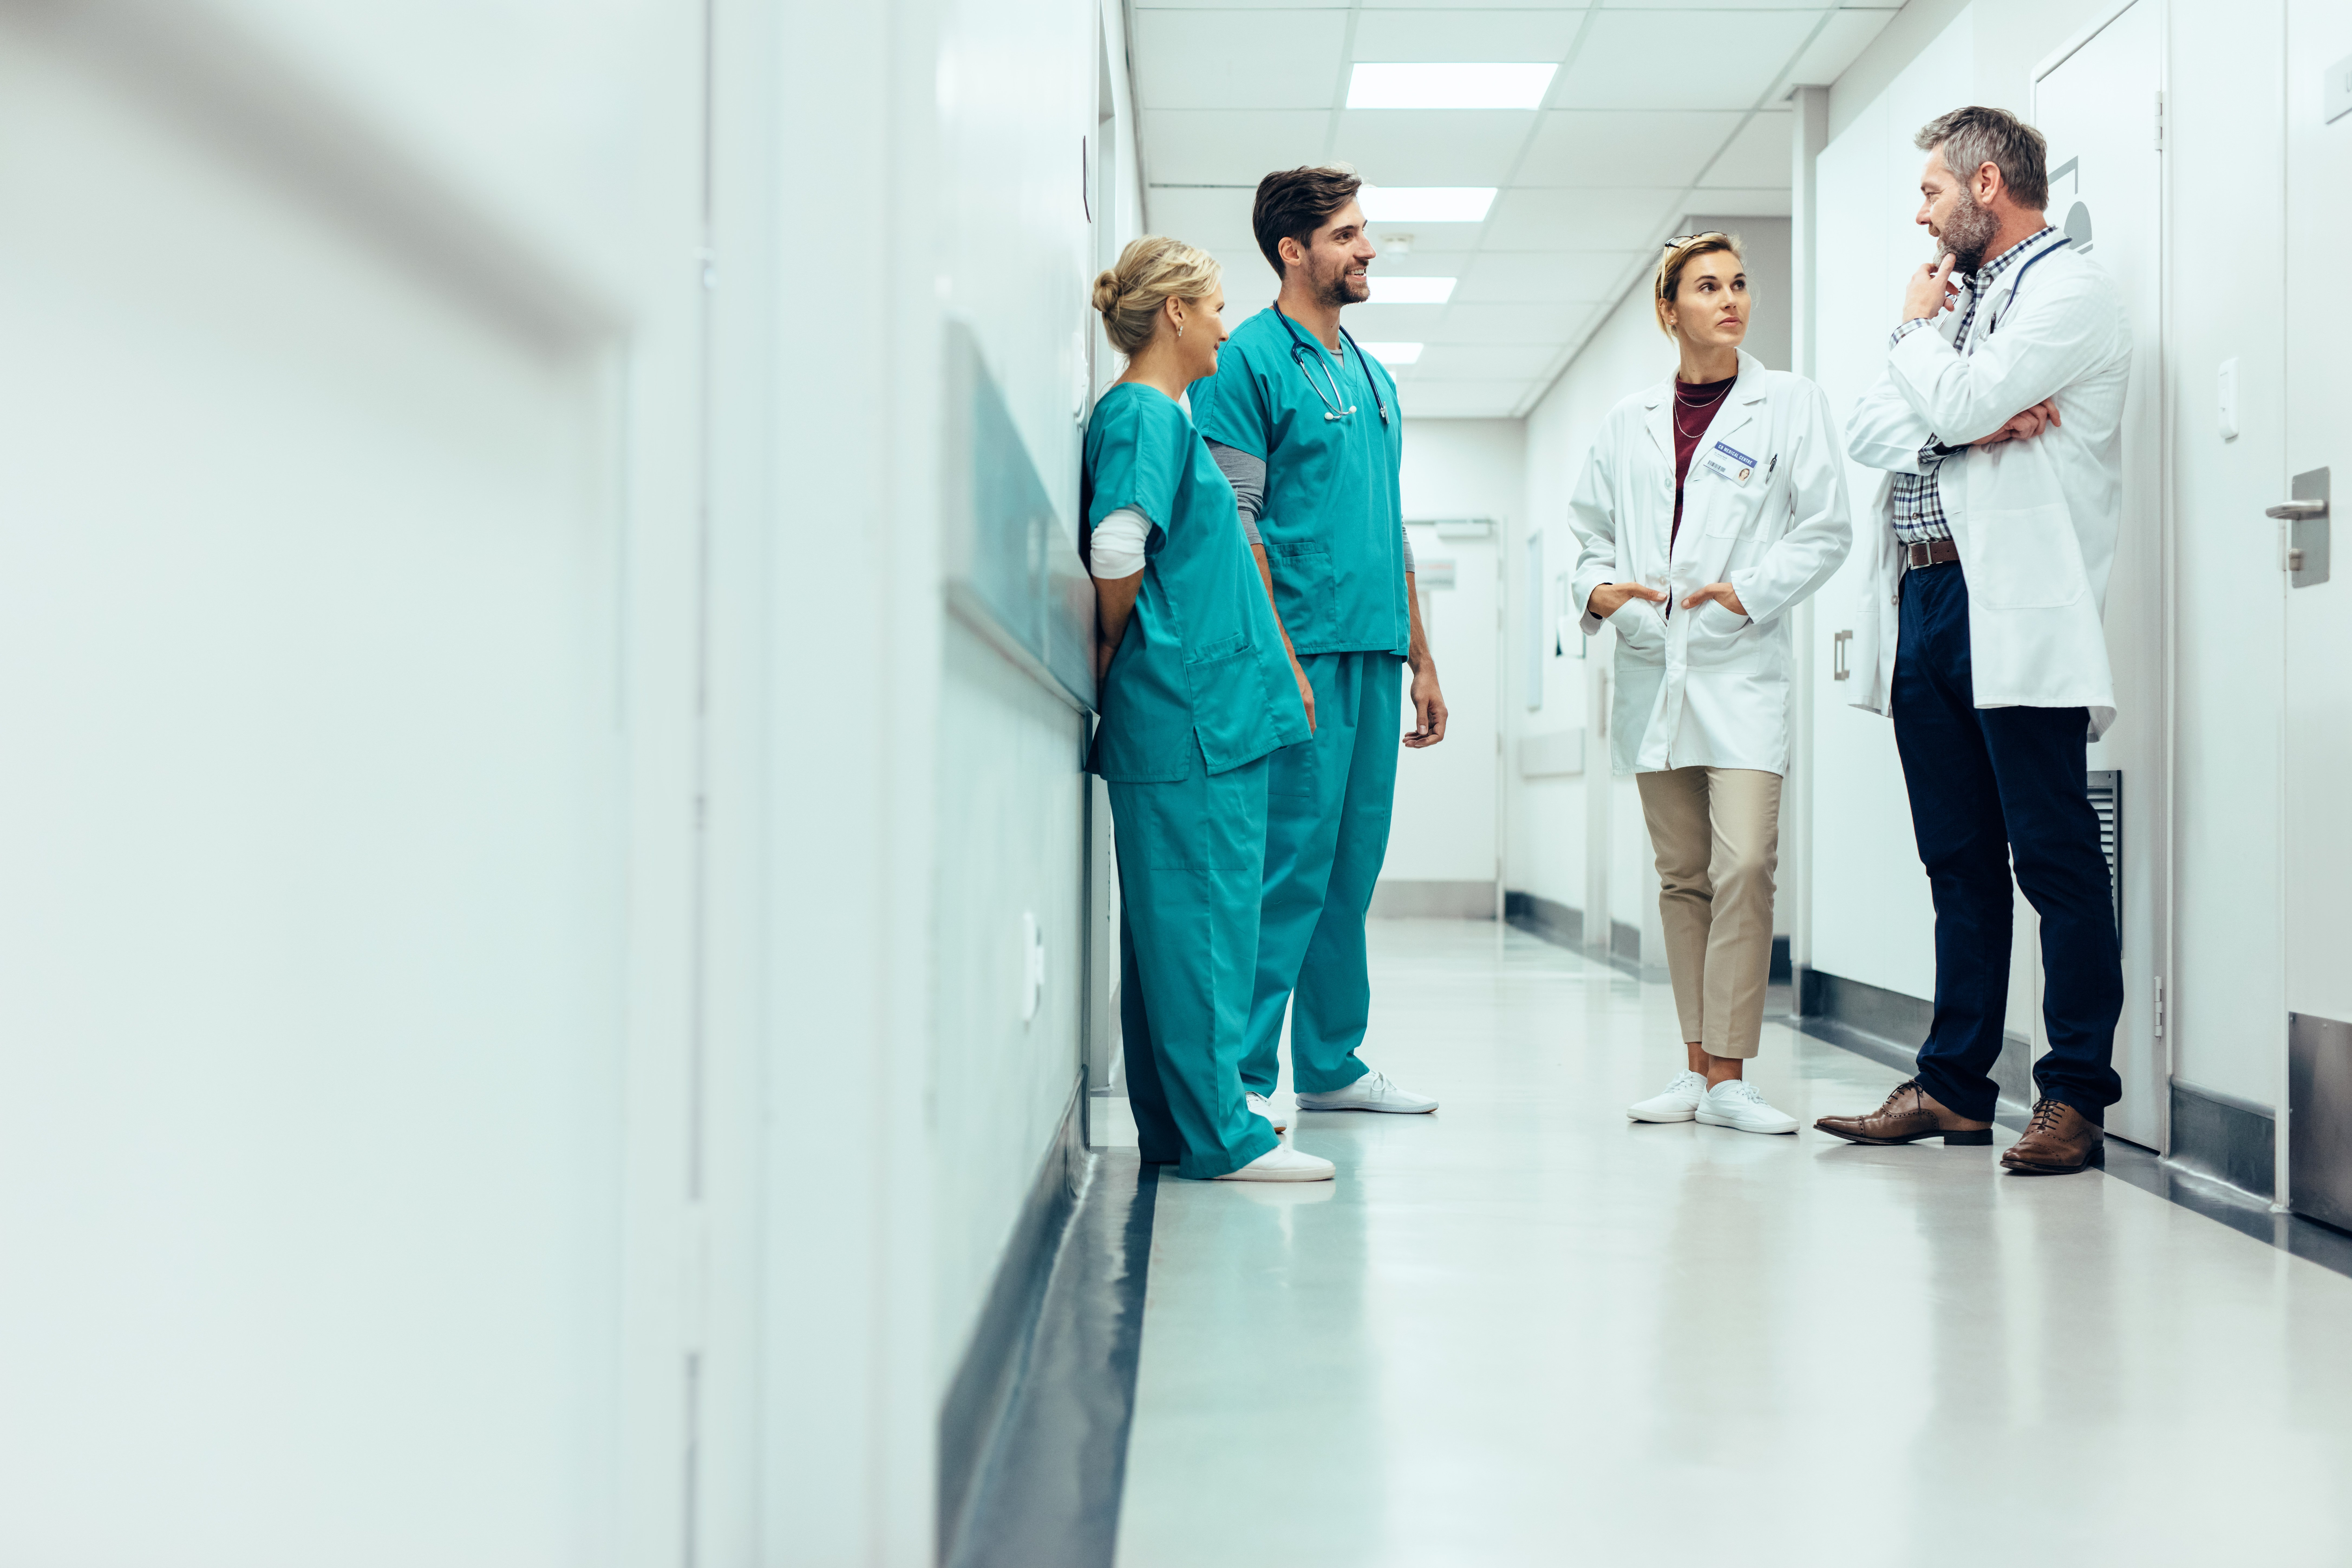 Doctors and nurses at hospital | Photo: Shutterstock